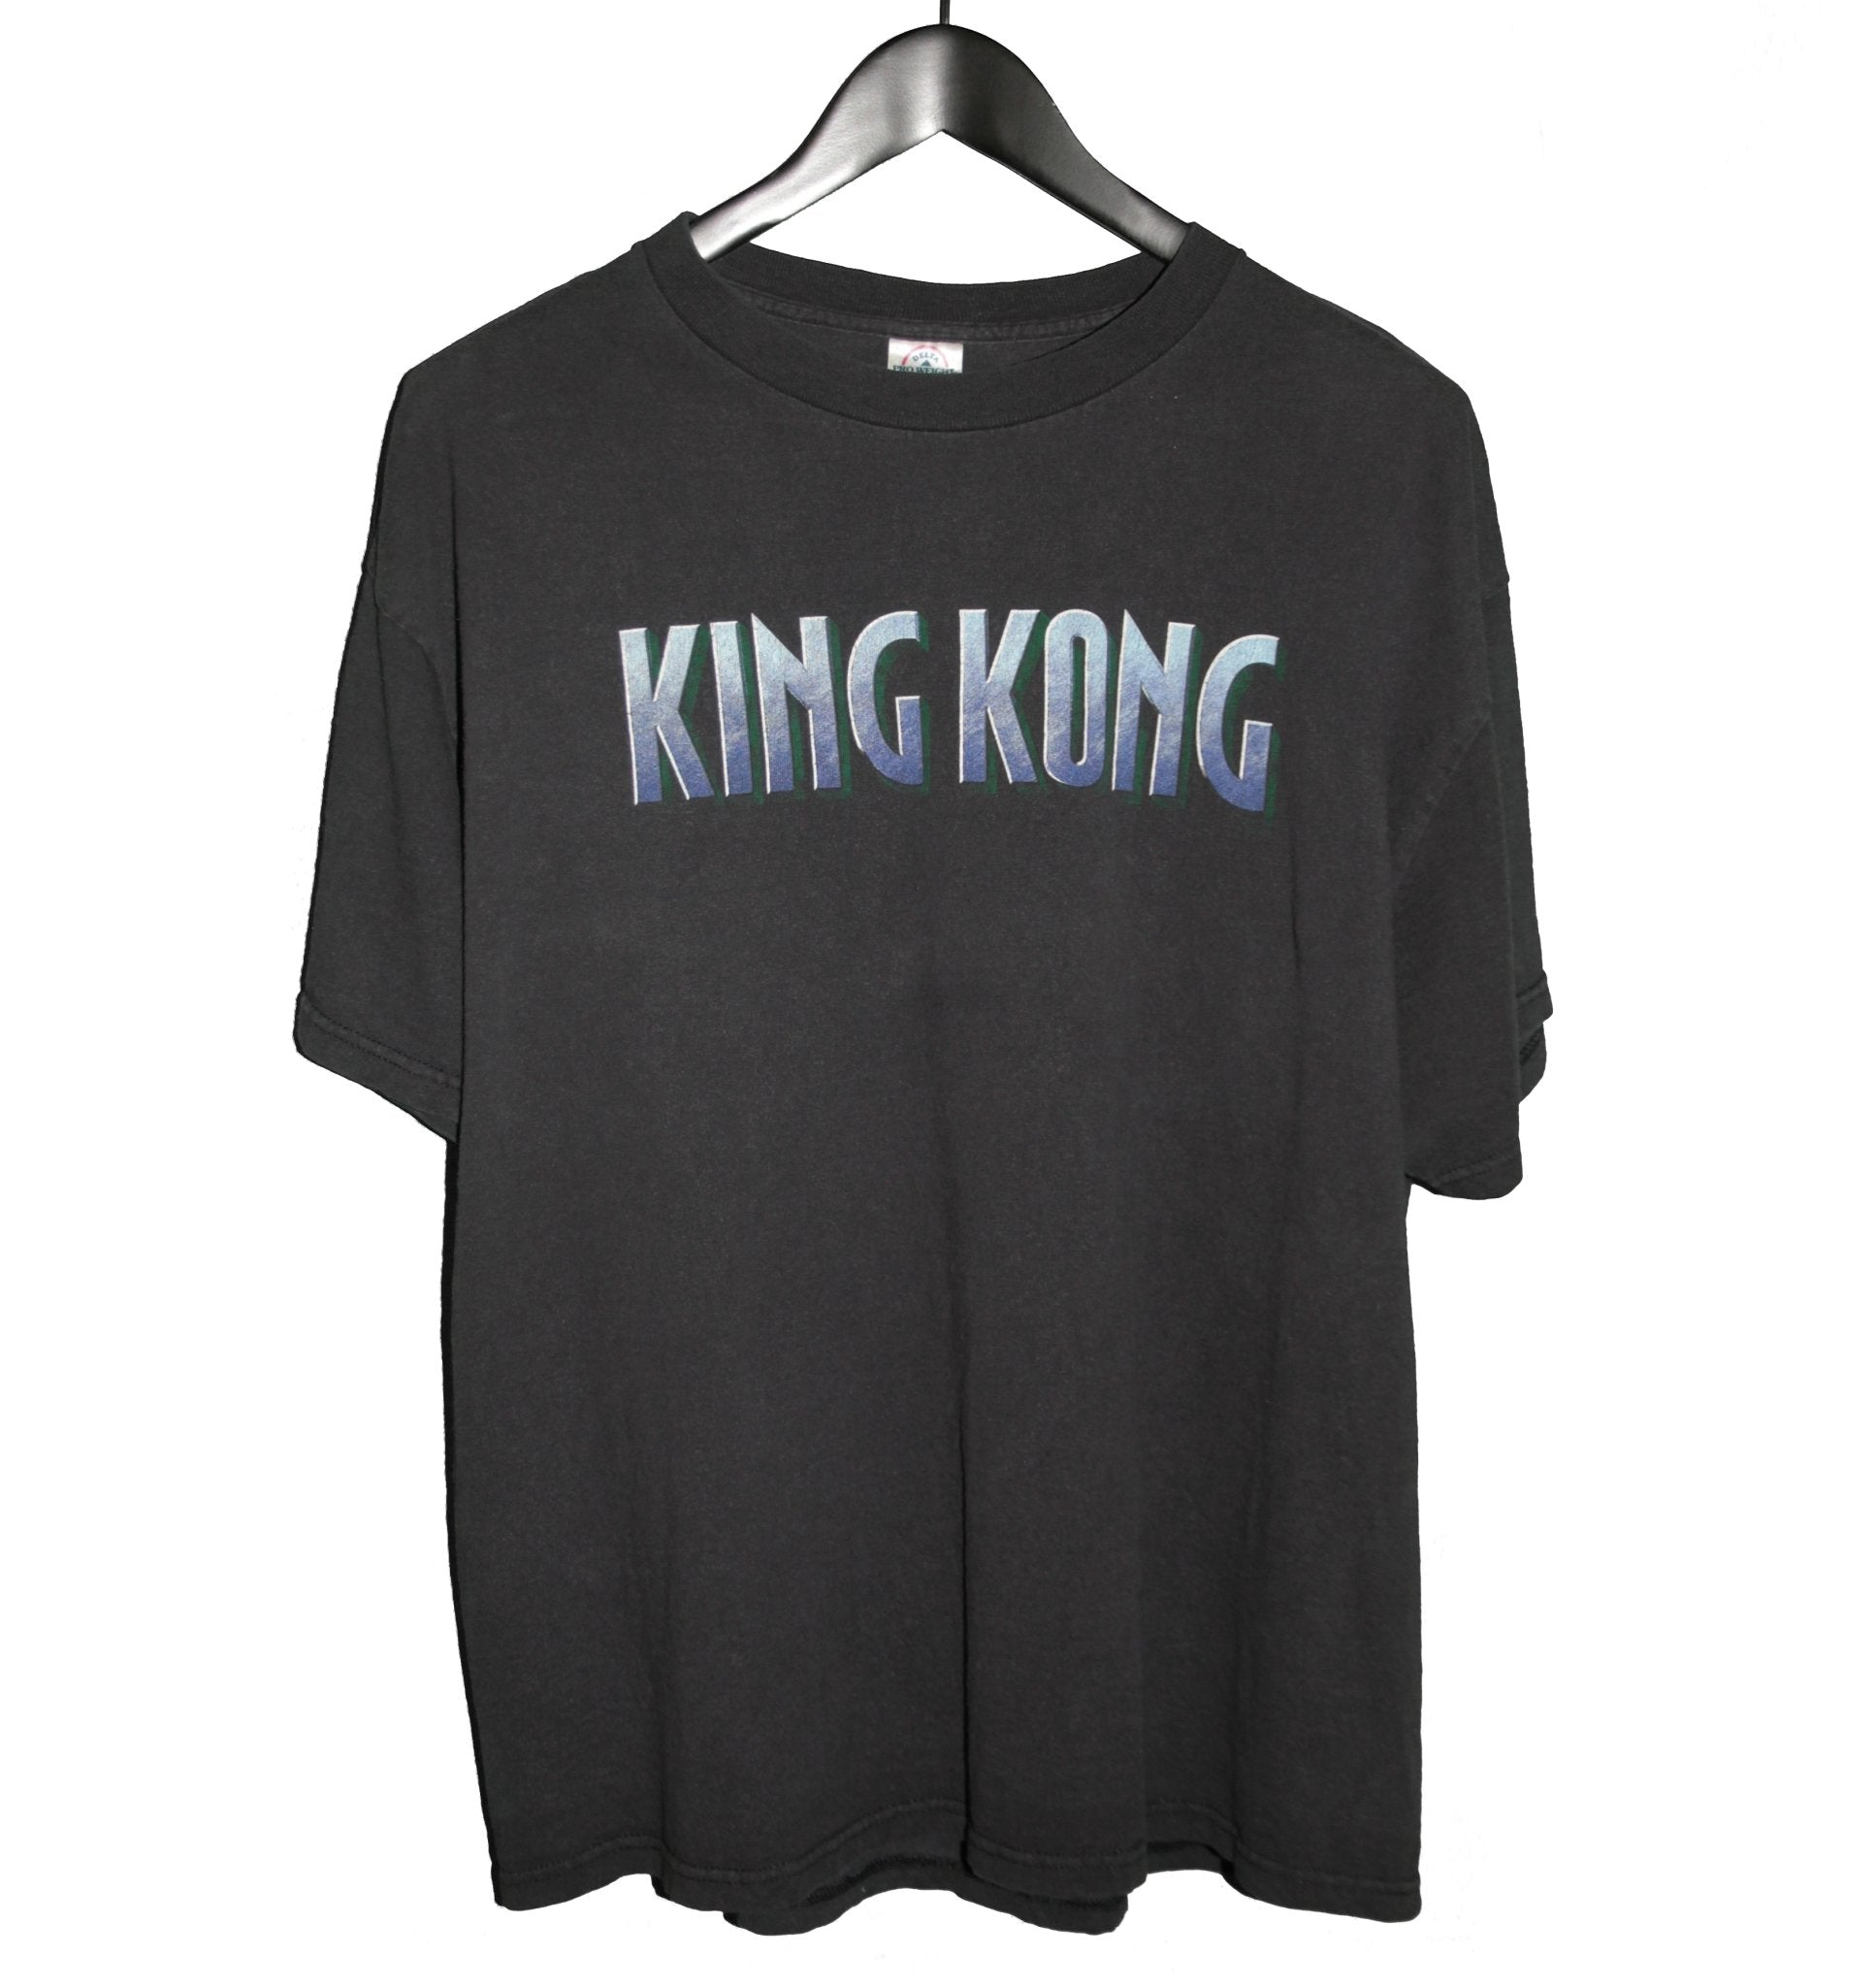 King Kong 2005 Promo Movie Shirt - Faded AU